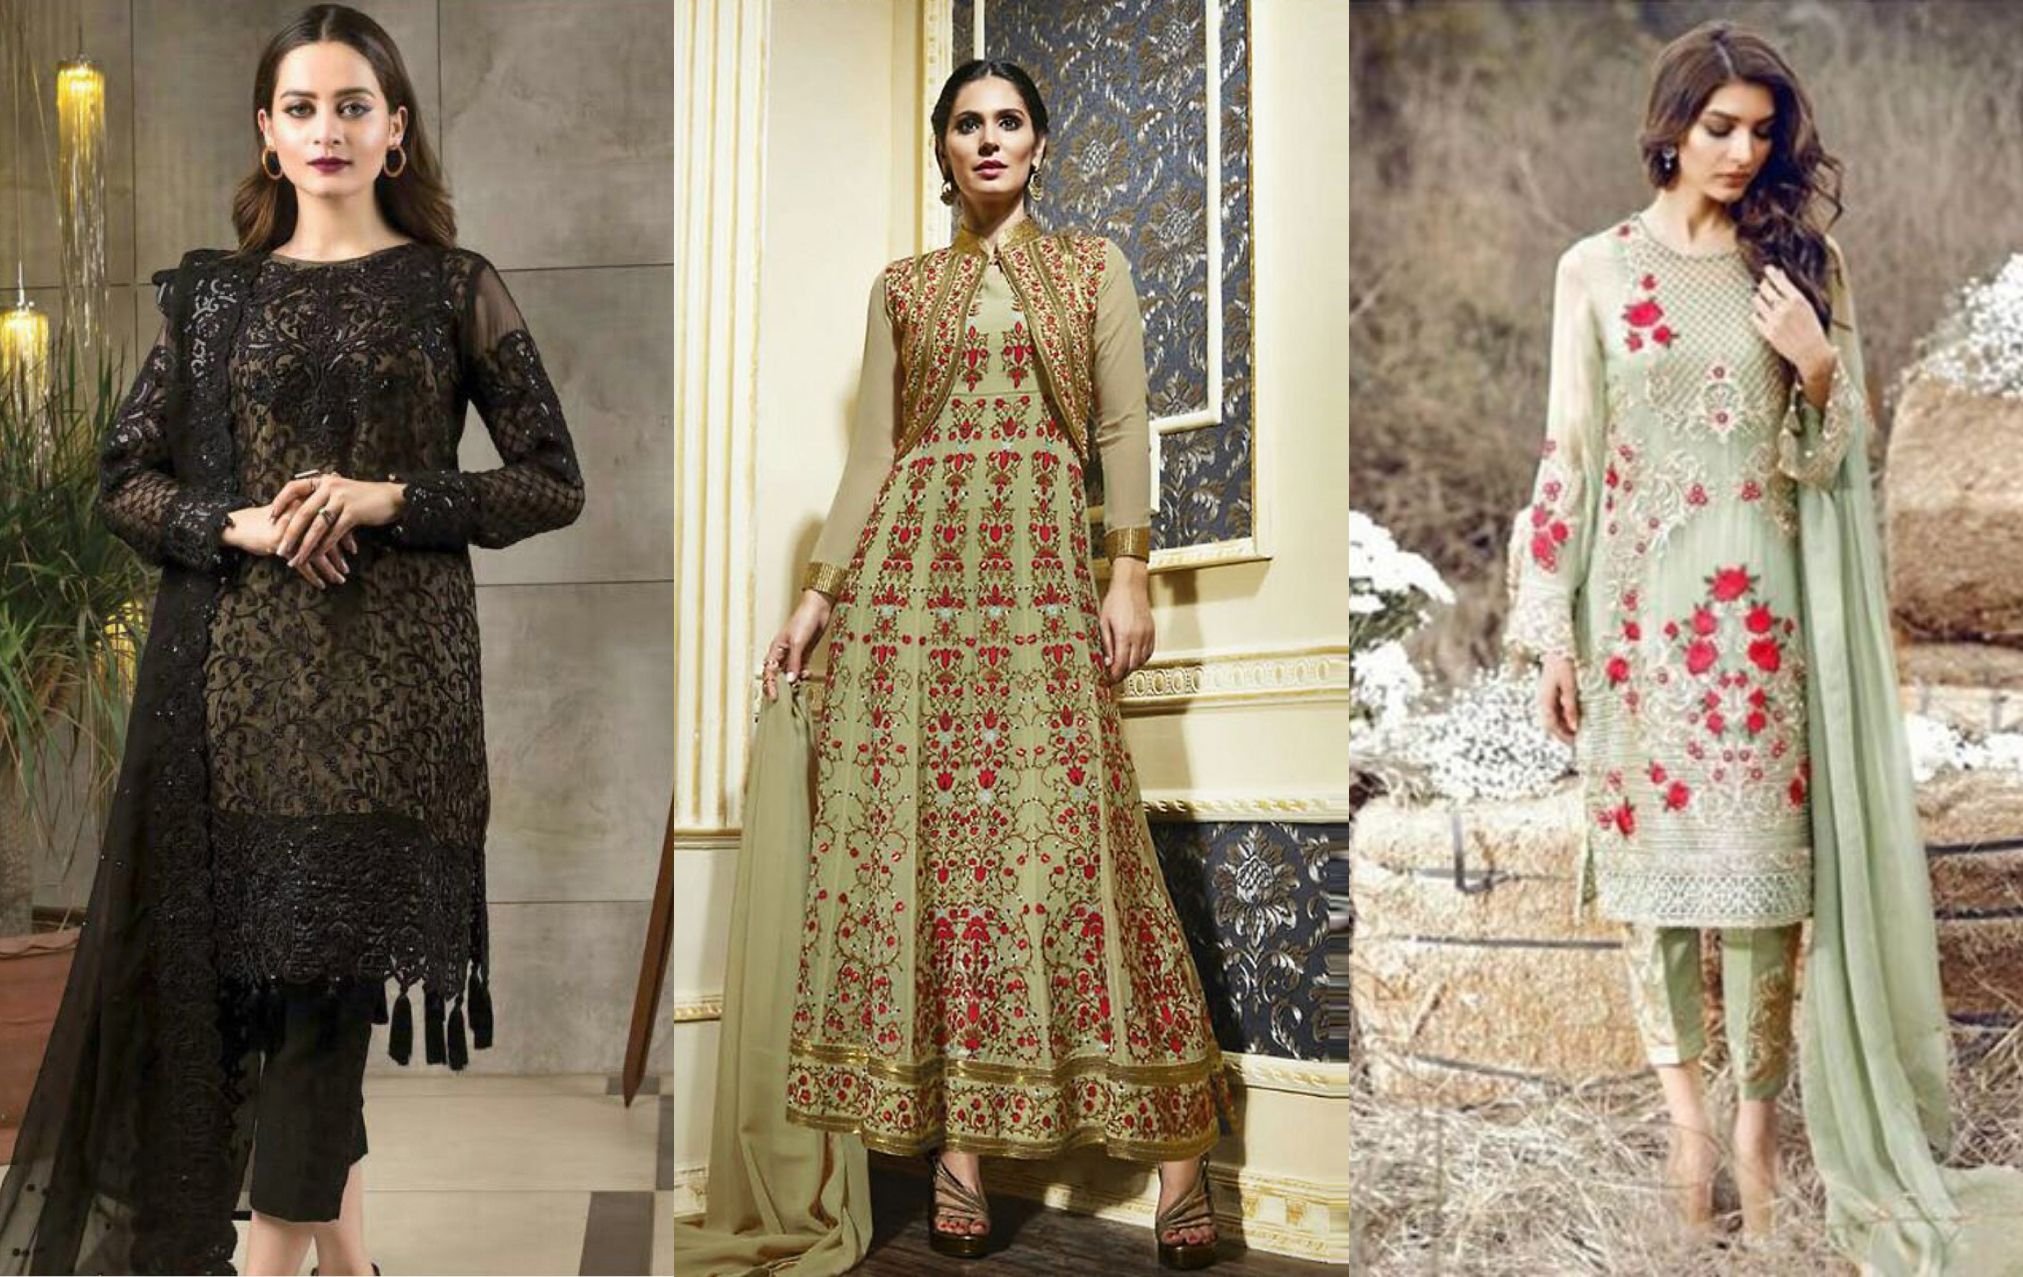 How to: Shalwar Kameez fashion for young girls this summer 2020